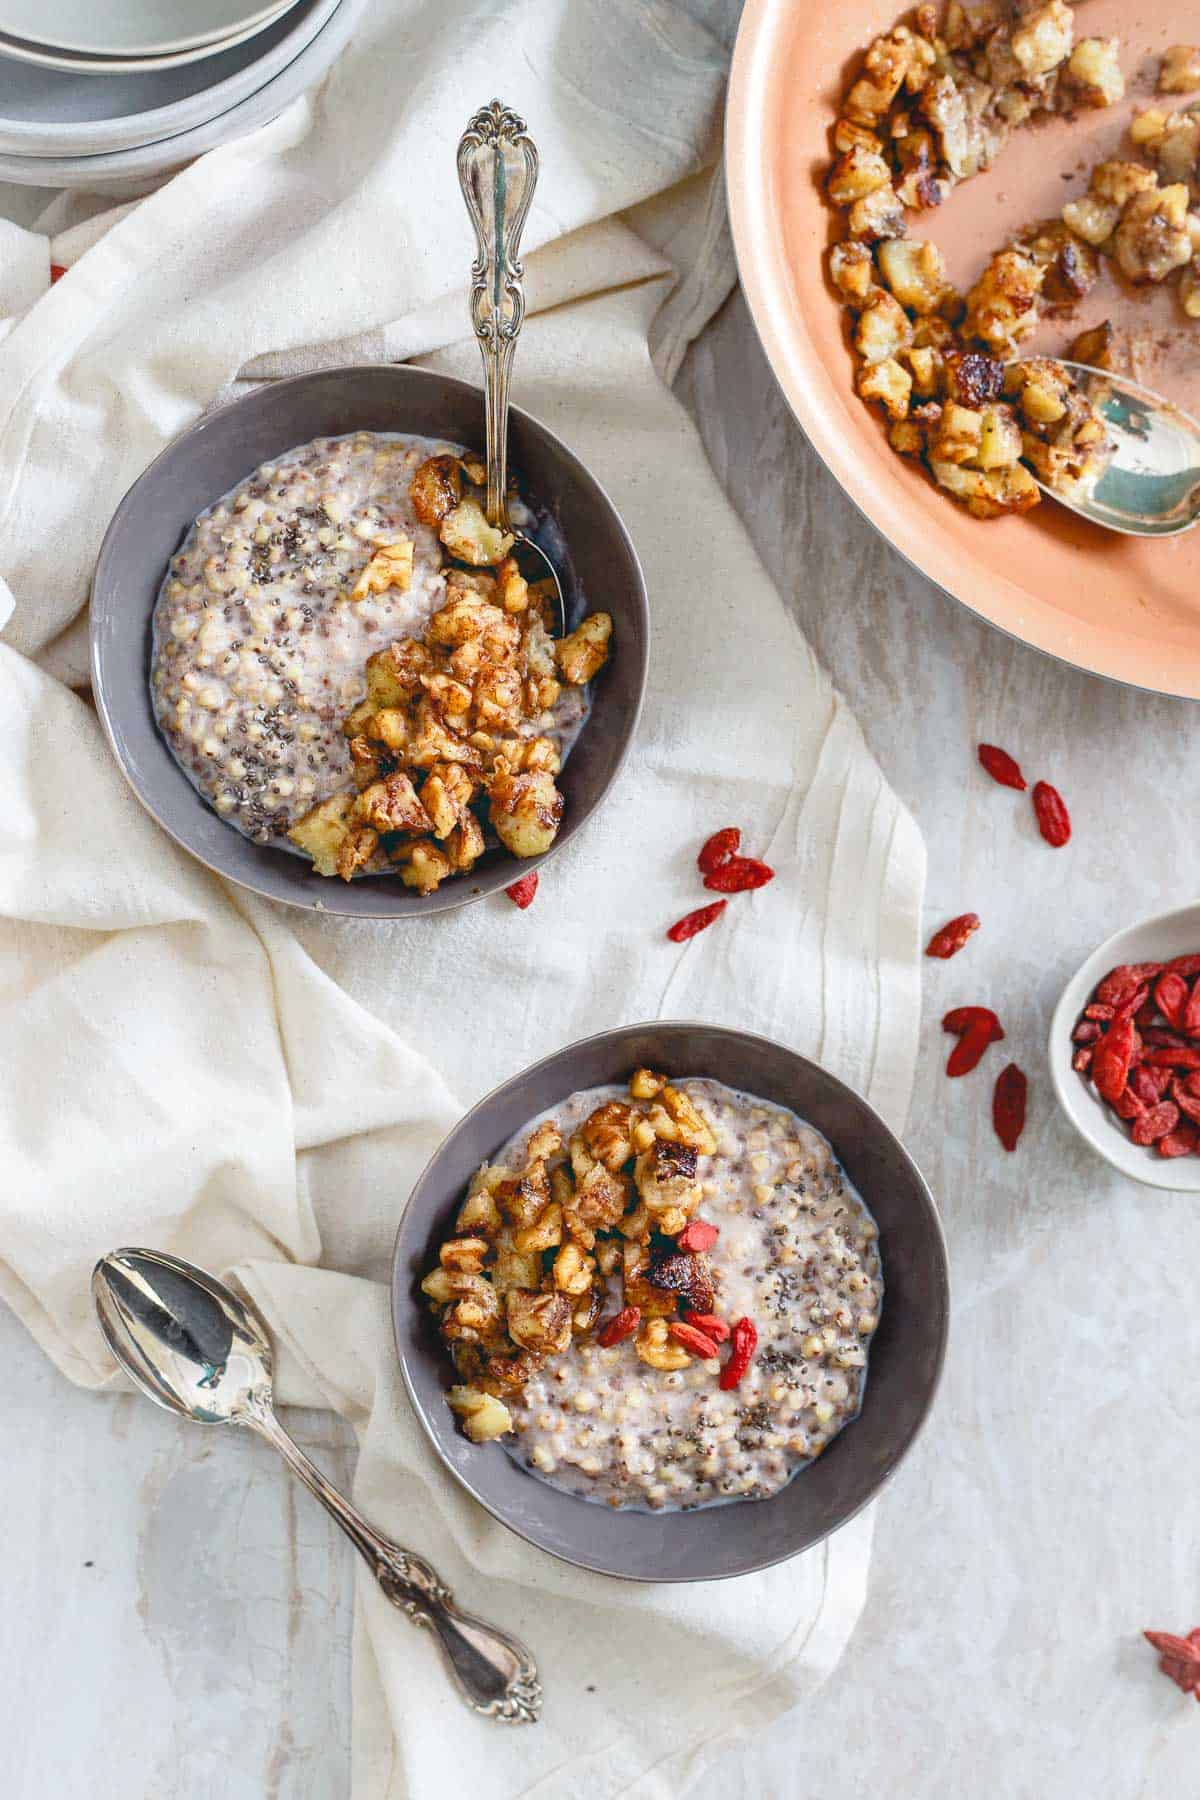 This warm breakfast cereal made with quinoa or buckwheat groats is topped with a sweet caramelized banana walnut topping.